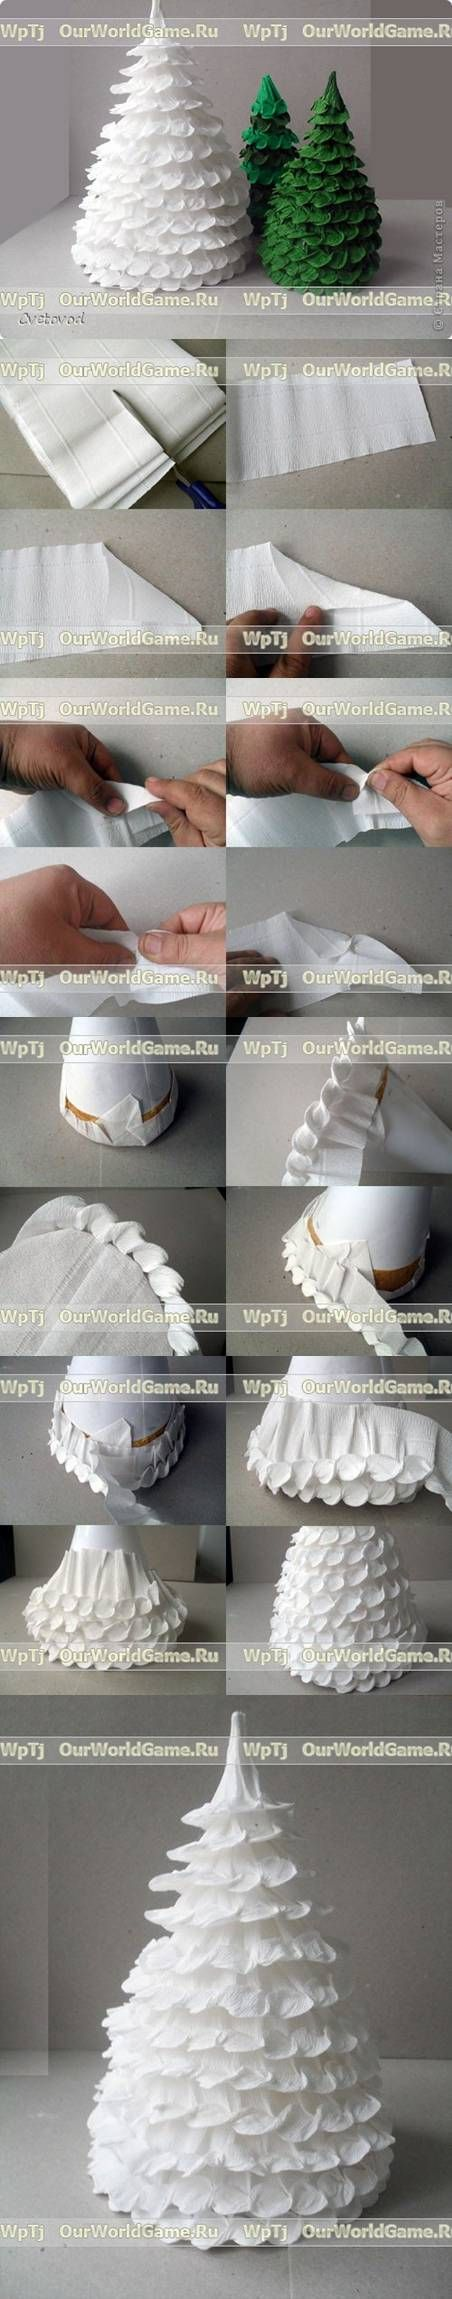 DIY Corrugated Paper Christmas DIY Projects | UsefulDIY.com Follow Us on Facebook ==> http://www.facebook.com/UsefulDiy